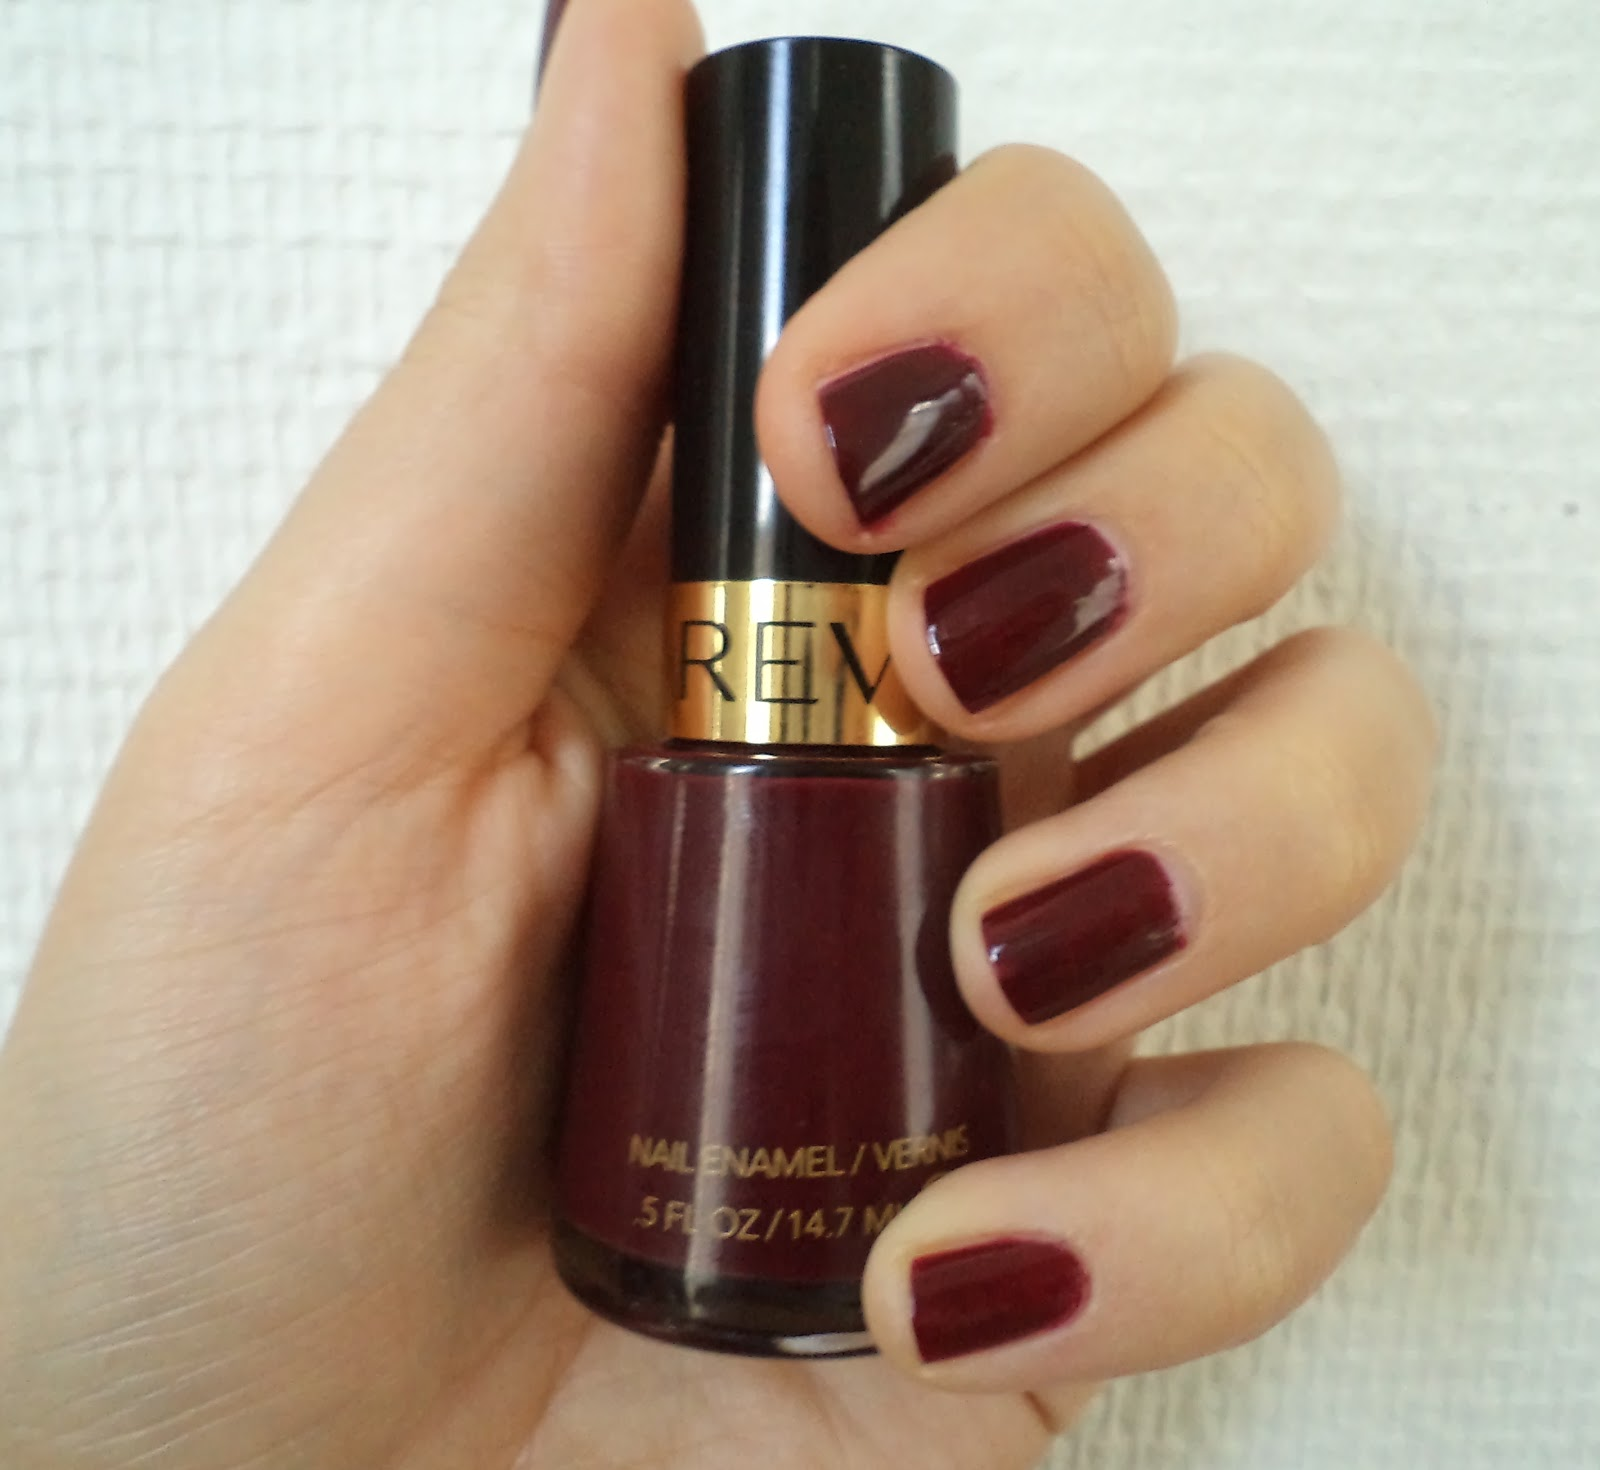 Nail of the Day: Revlon \'Vixen\' | Truth About Cosmetics